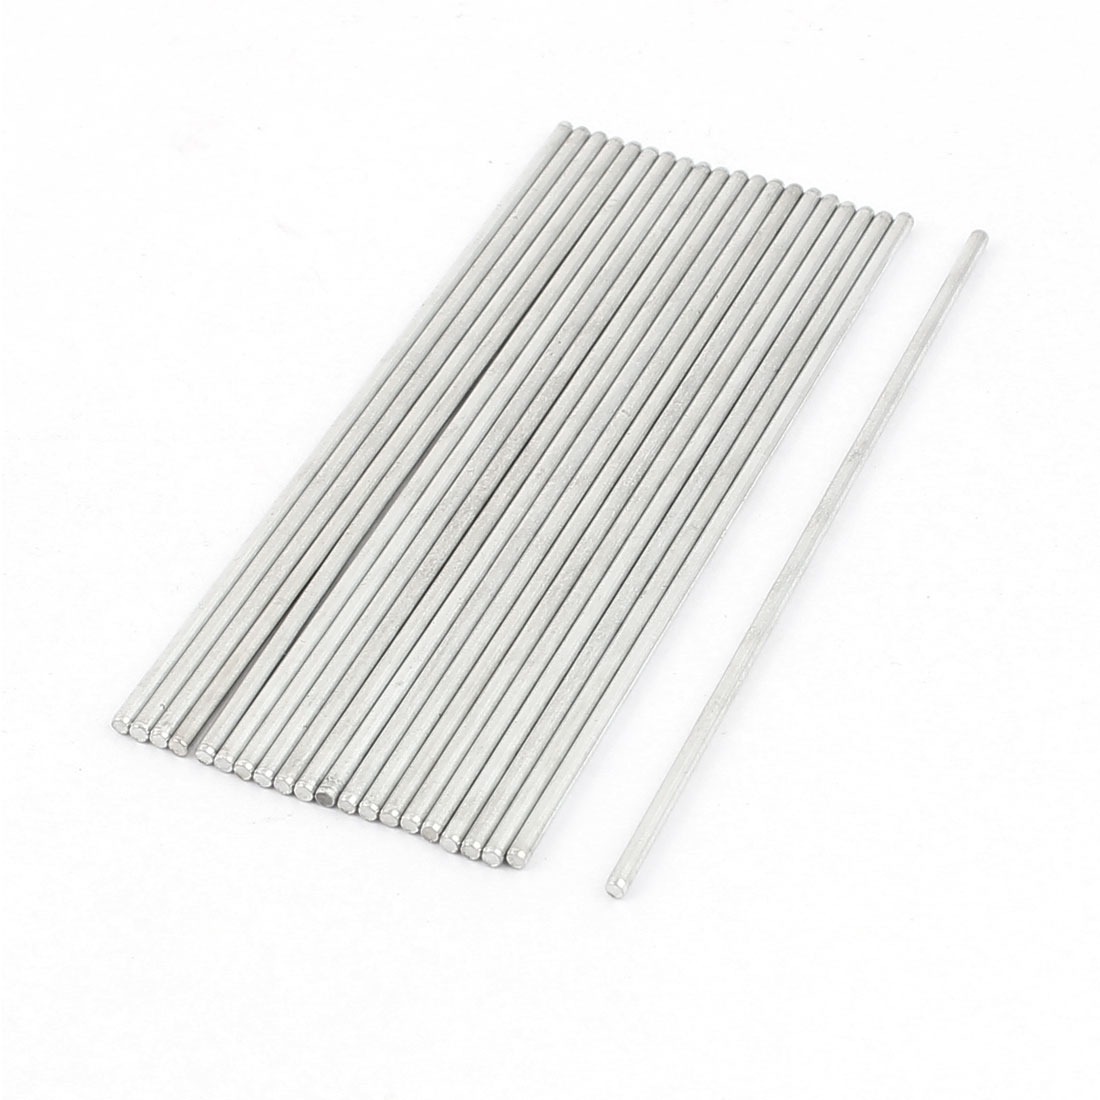 20 Pcs 2mm x 100mm DIY RC Car Toy Model Straight Metal Round Shaft Rod Bars